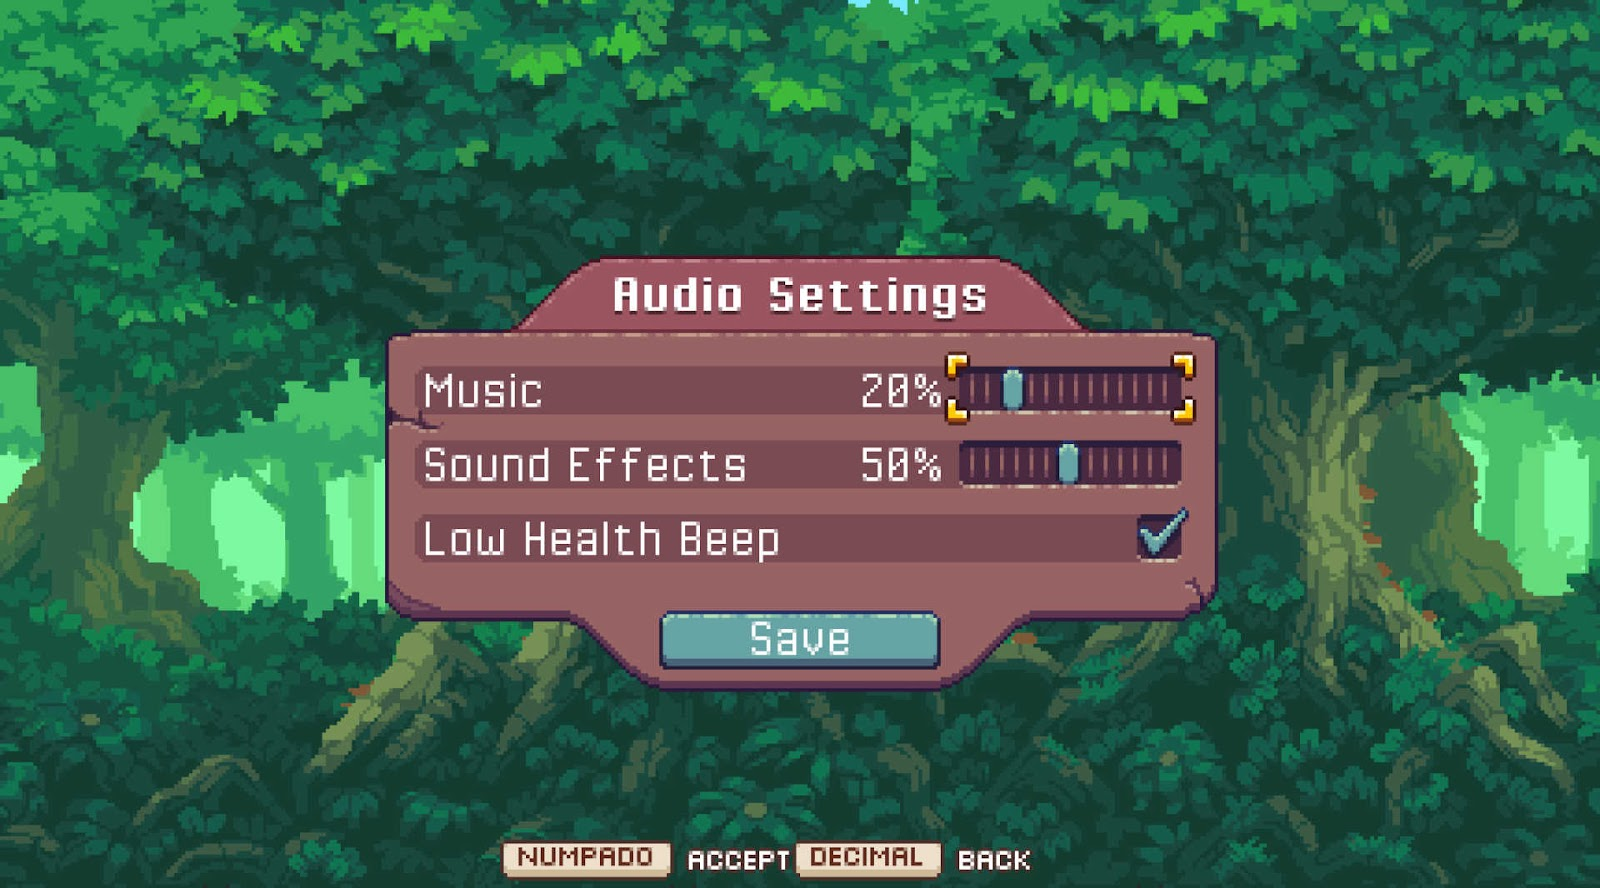 Music and Sound effects controls and Low health beep checkbox.